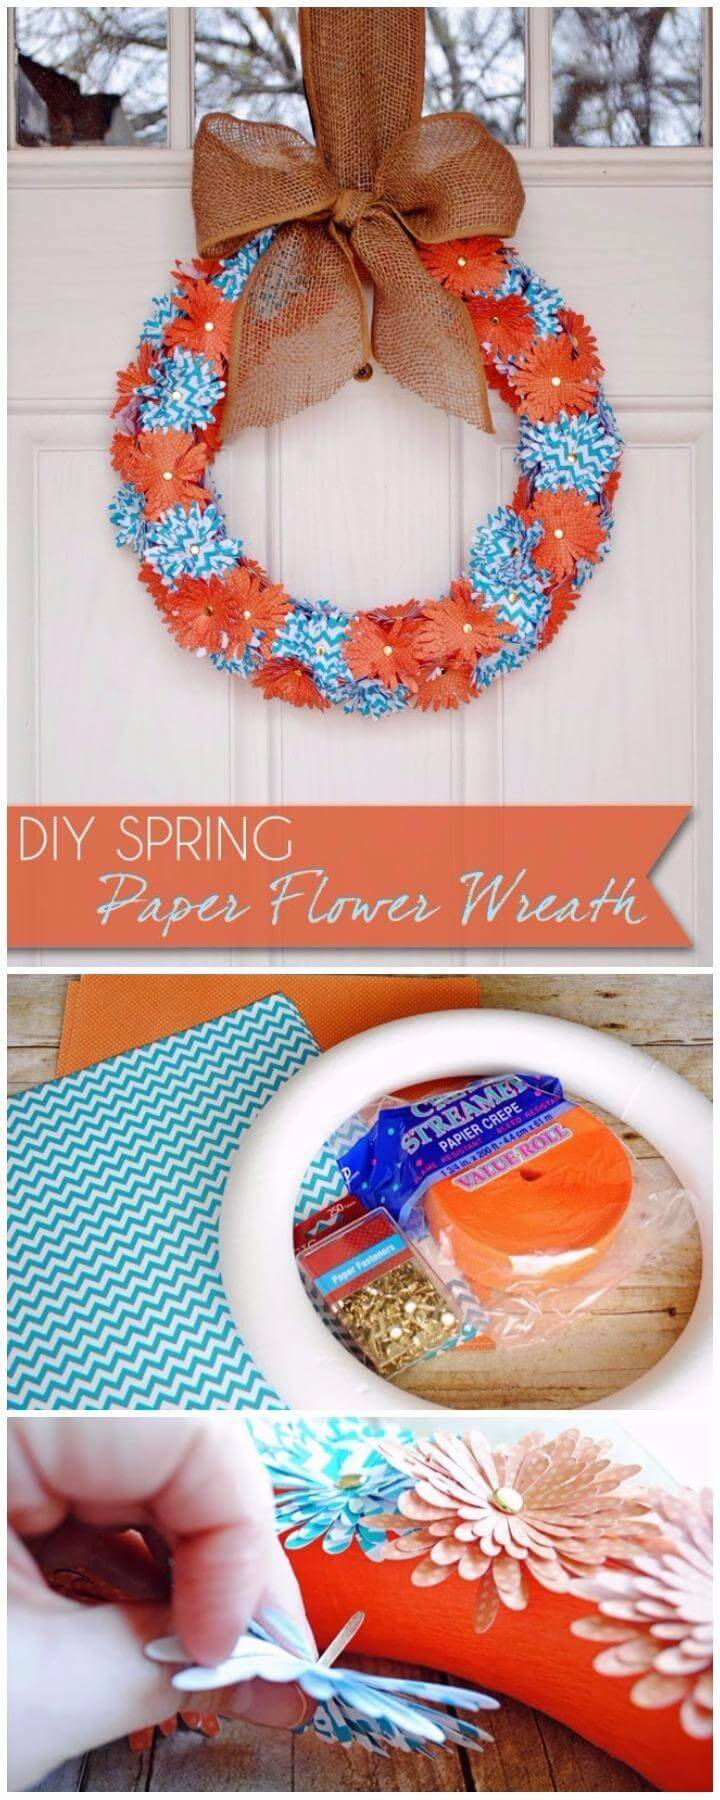 DIY Self-Made Paper Flower Wreath